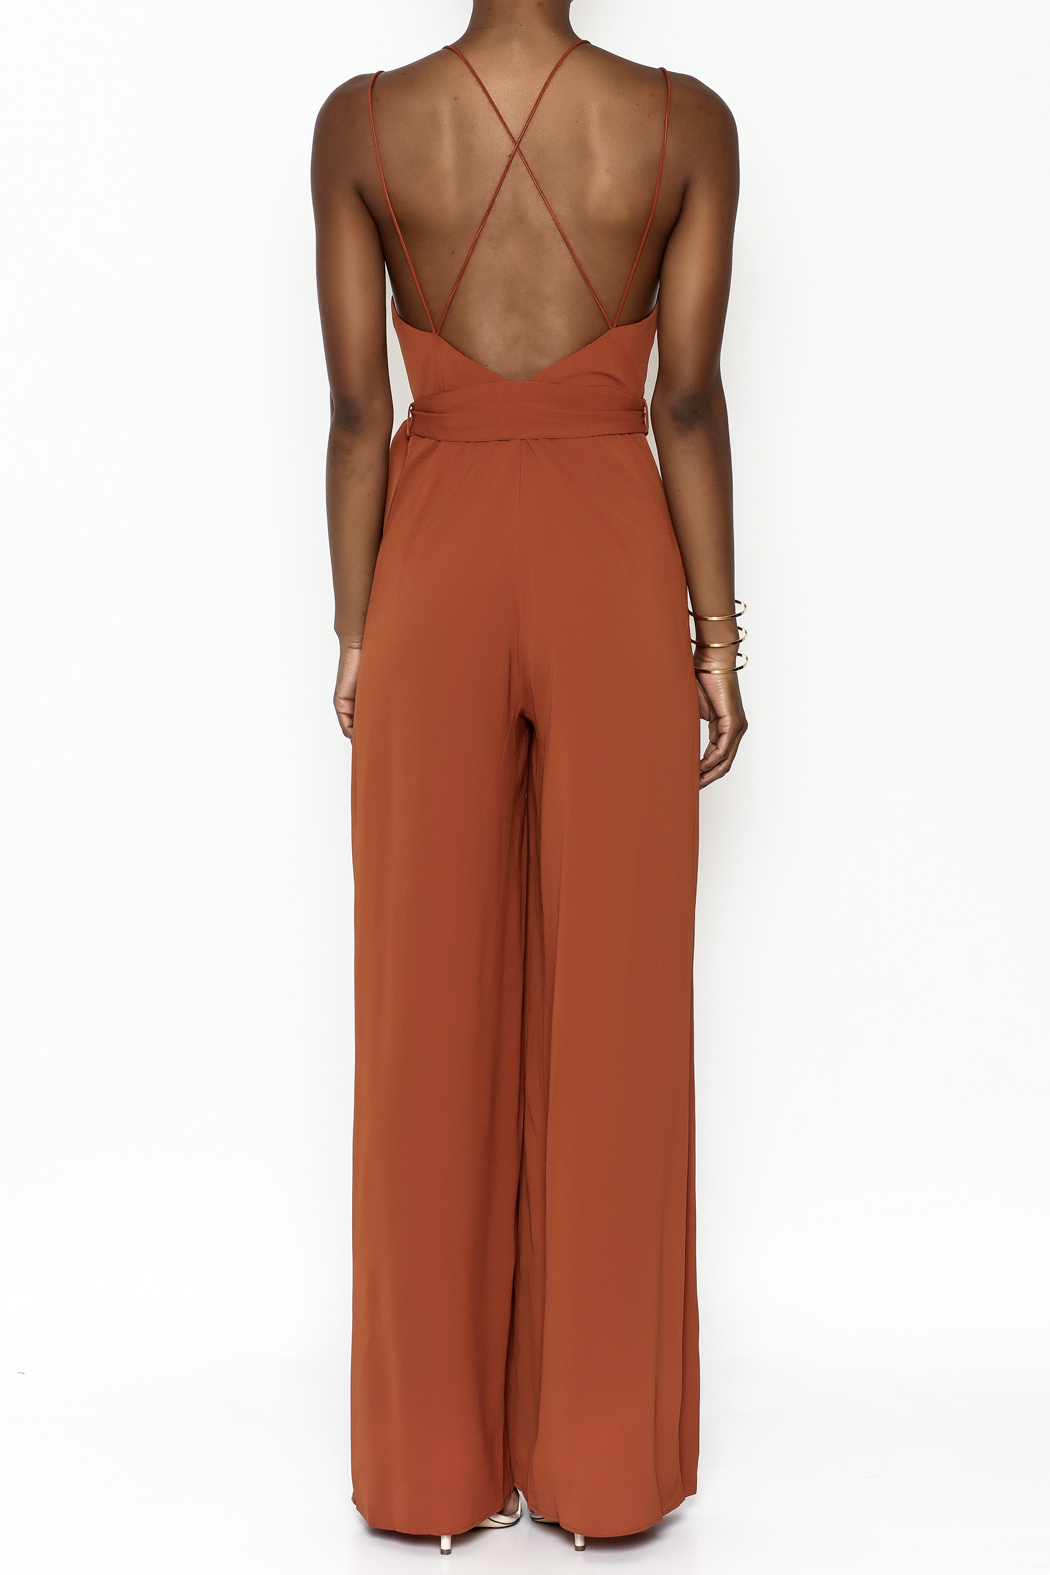 luxxel Strappy Jumper - Back Cropped Image